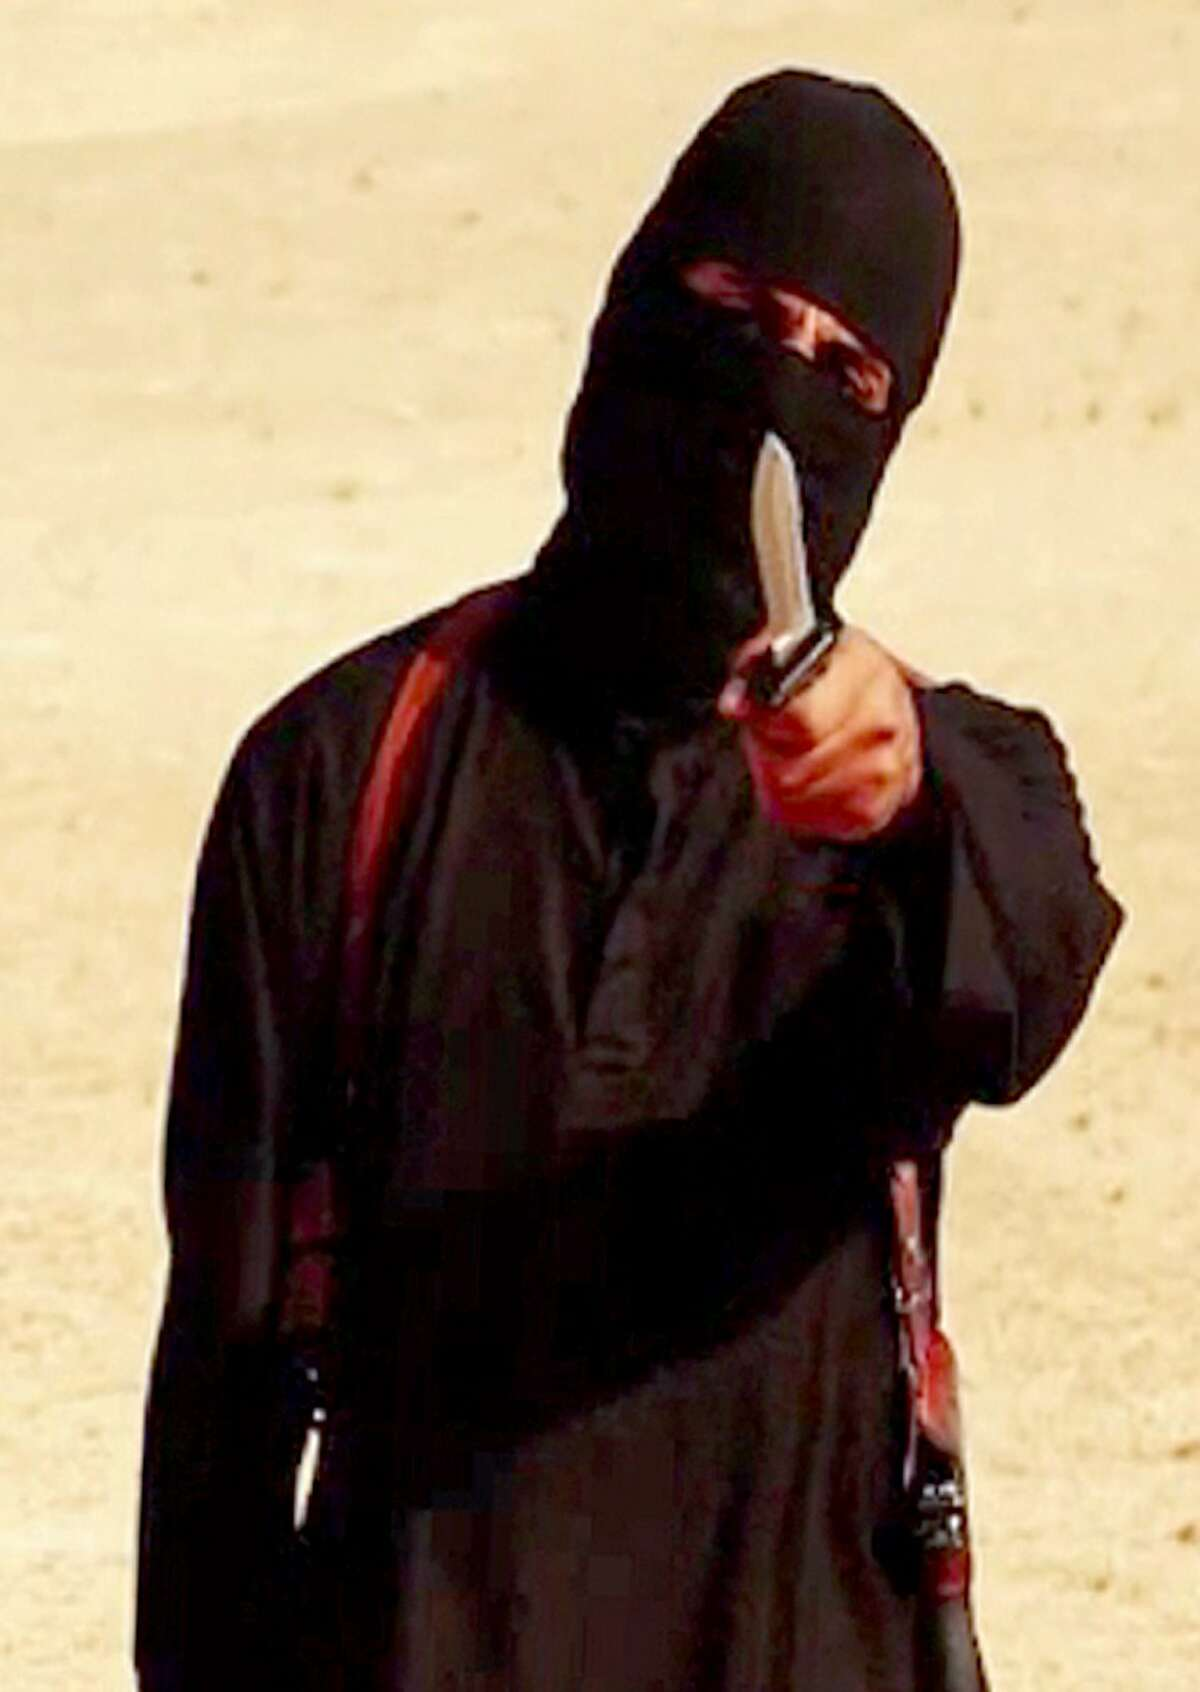 """A file image grab taken from a video released by the Islamic State (IS) and identified by SITE Intelligence Group on September 2, 2014 purportedly shows a masked militant holding a knife and gesturing as he speaks to the camera in a desert landscape before beheading 31-year-old US freelance writer Steven Sotloff. """"Jihadi John"""", the masked Islamic State militant apparently responsible for the beheading of western hostages including journalists James Foley and Steven Sotloff, was on February 26, 2015 named as London man Mohammed Emwazi by the Washington Post and the BBC. AFP PHOTO / SITE INTELLIGENCE GROUP / HO === RESTRICTED TO EDITORIAL USE - MANDATORY CREDIT """"AFP PHOTO / HO / SITE INTELLIGENCE GROUP - NO MARKETING NO ADVERTISING CAMPAIGNS - DISTRIBUTED AS A SERVICE TO CLIENTS FROM ALTERNATIVE SOURCES, AFP IS NOT RESPONSIBLE FOR ANY DIGITAL ALTERATIONS TO THE PICTURE'S ===HO/AFP/Getty Images"""